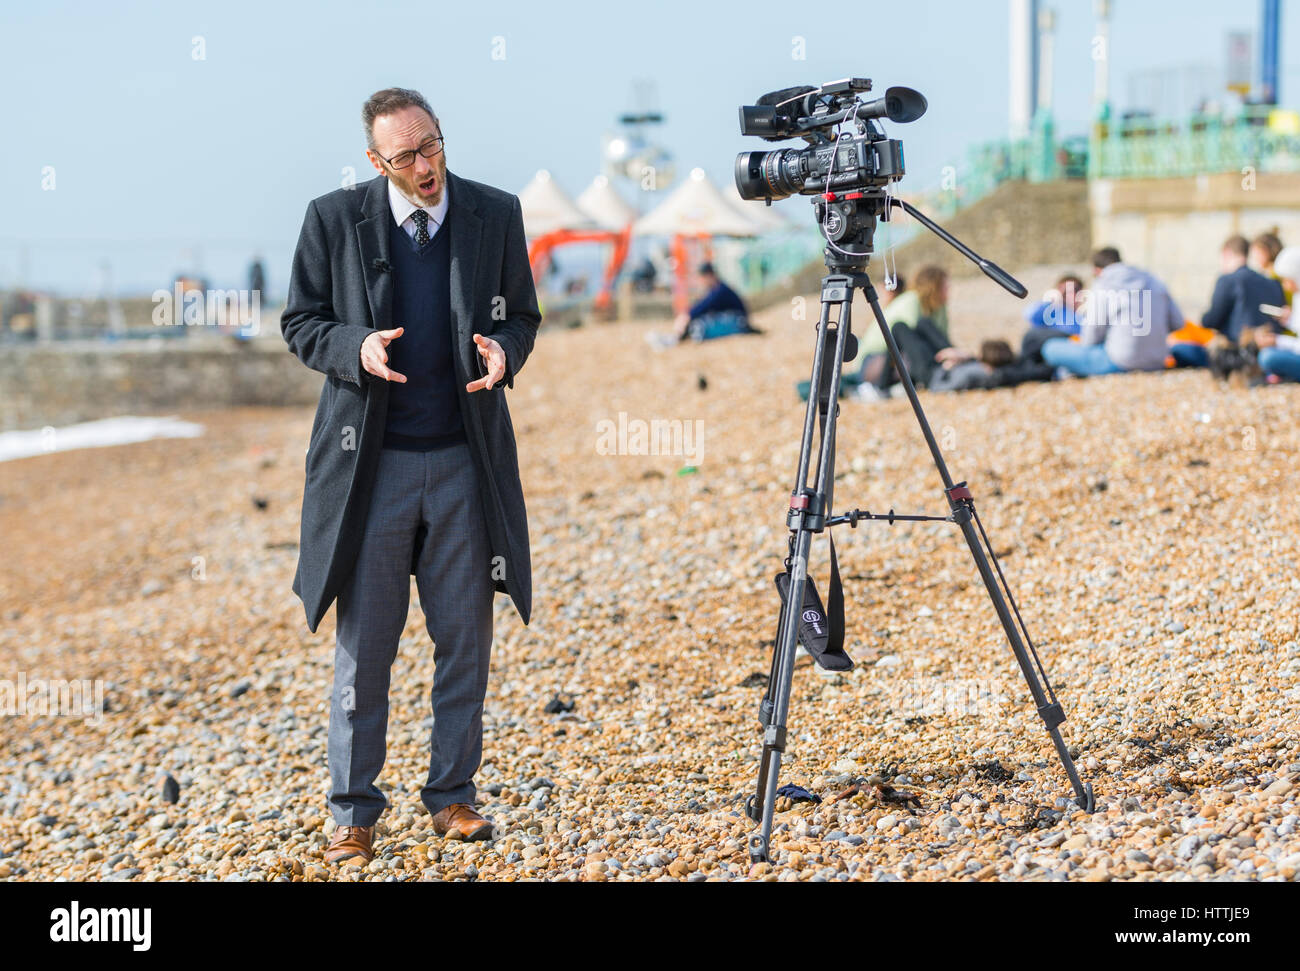 News reporter on a beach making an outside broadcast for a television.news programme. - Stock Image